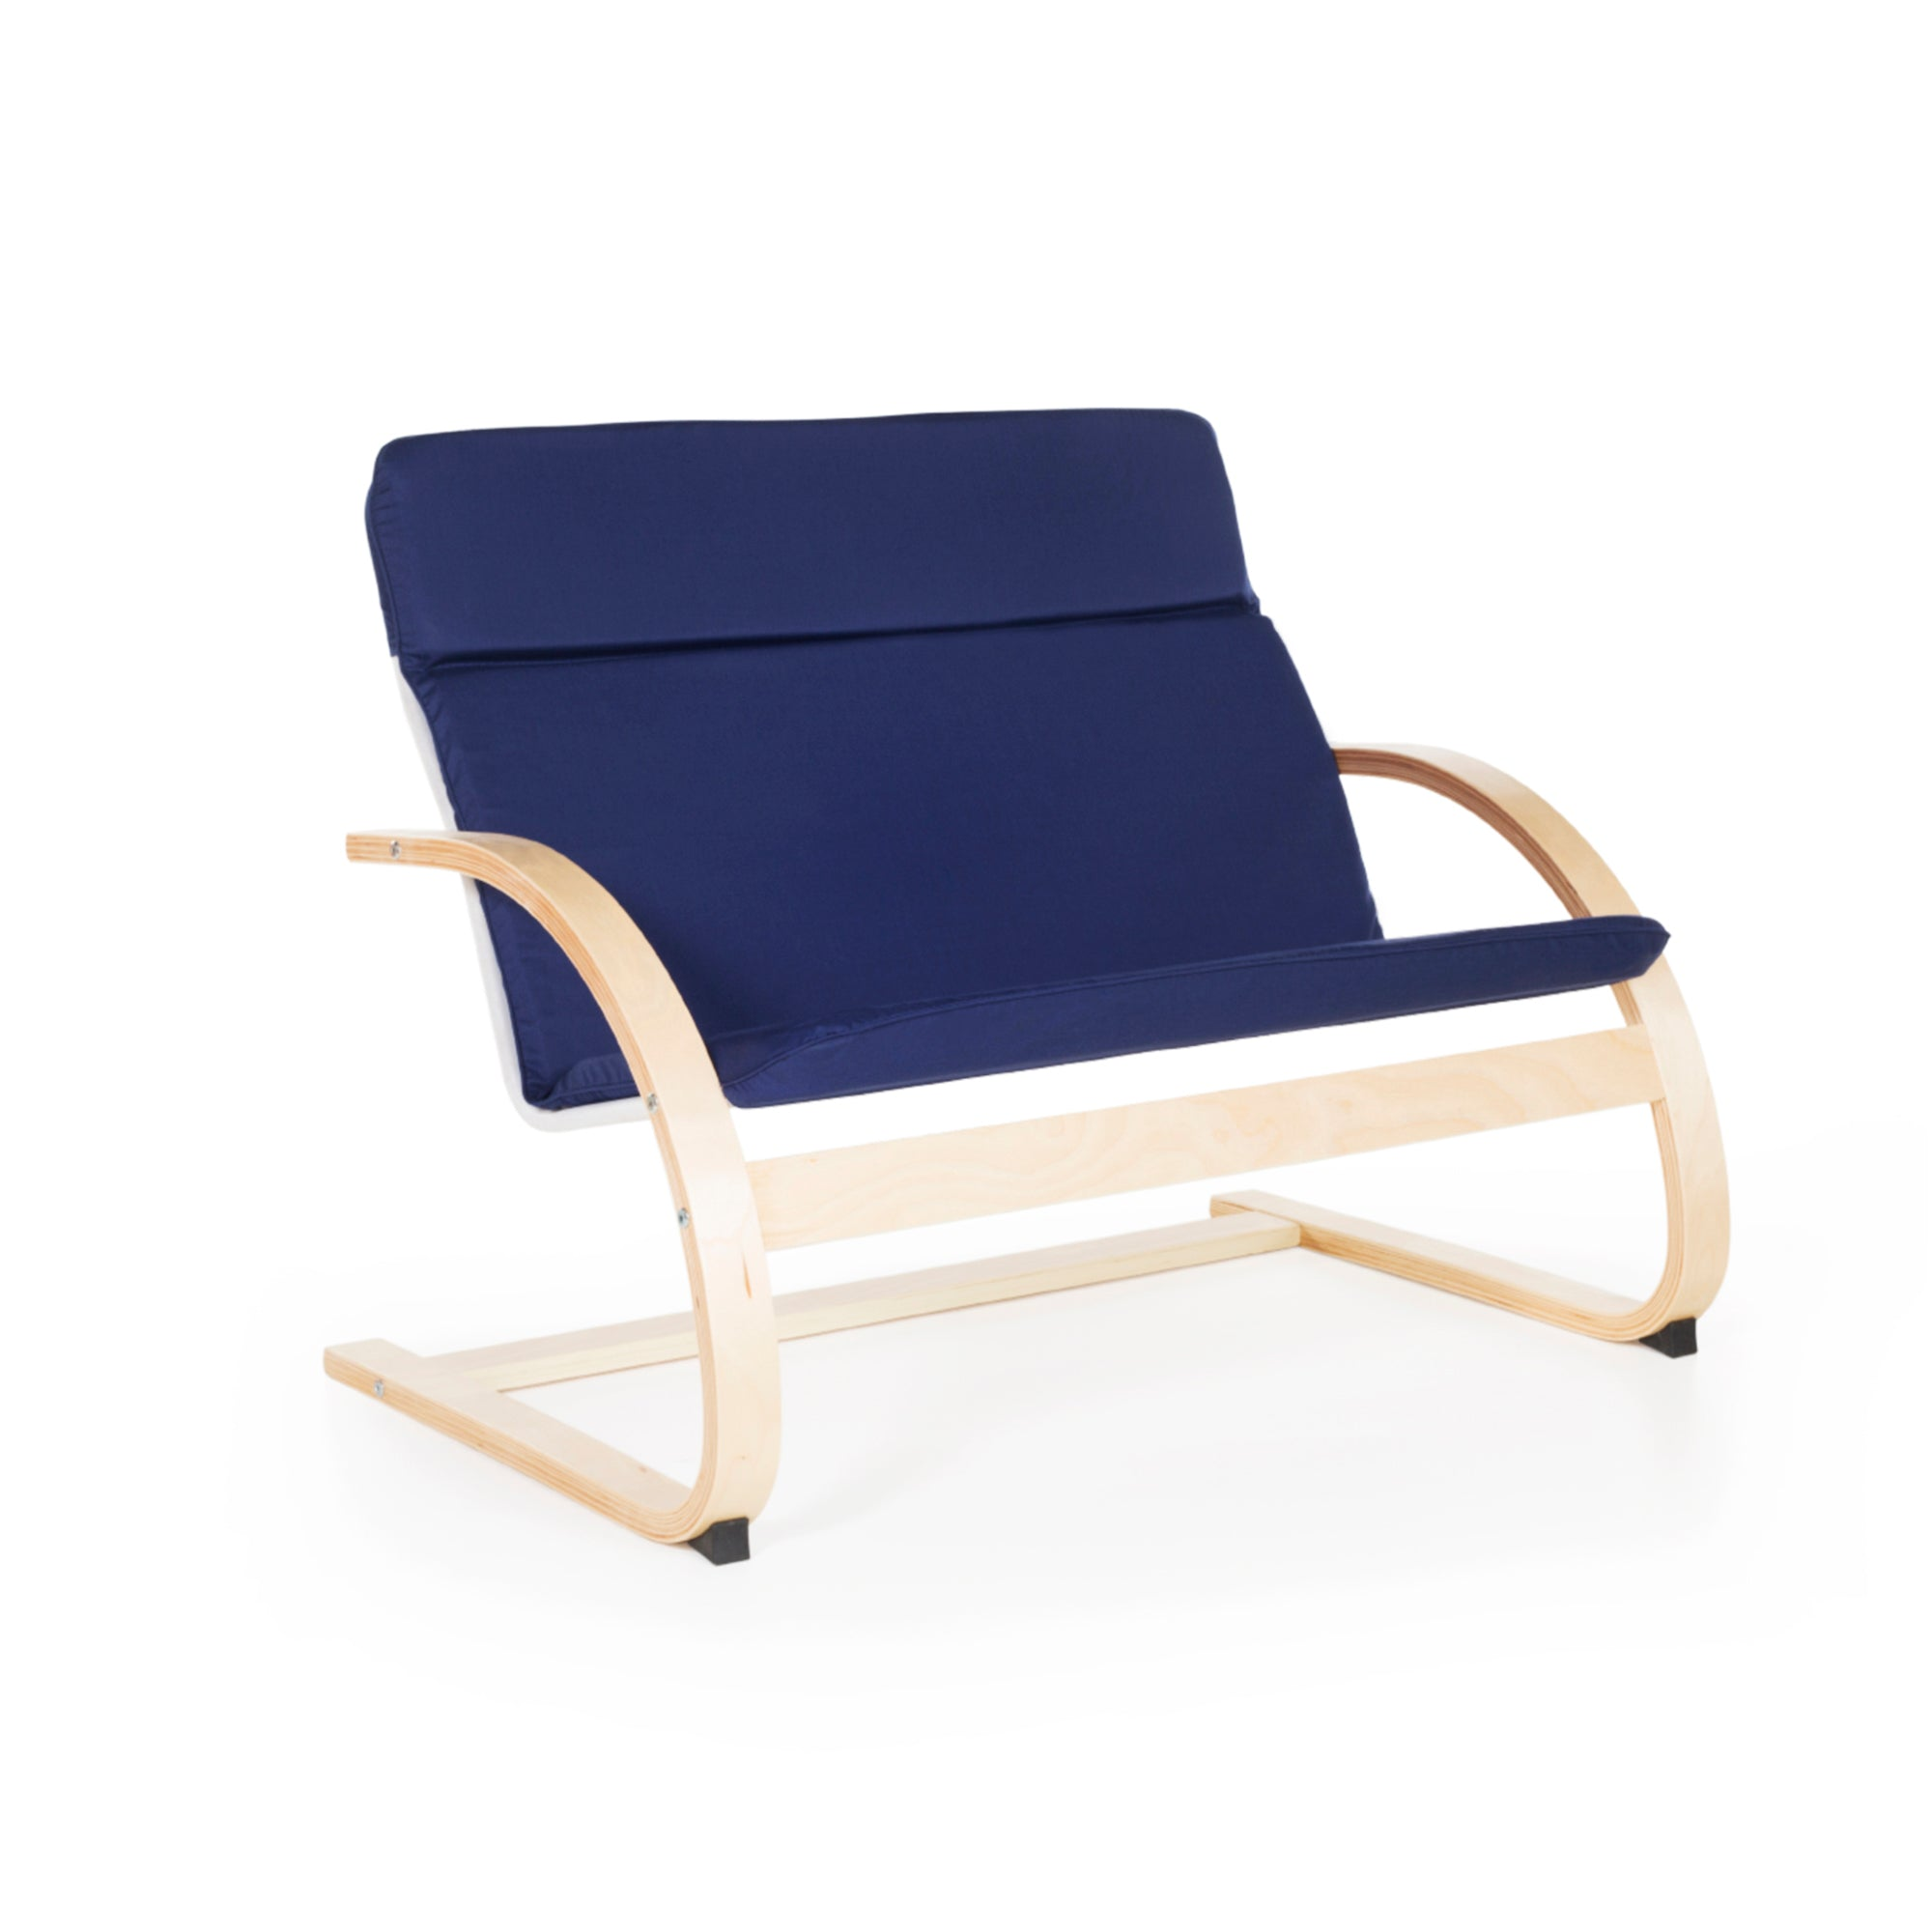 Guidecraft Nordic Couch